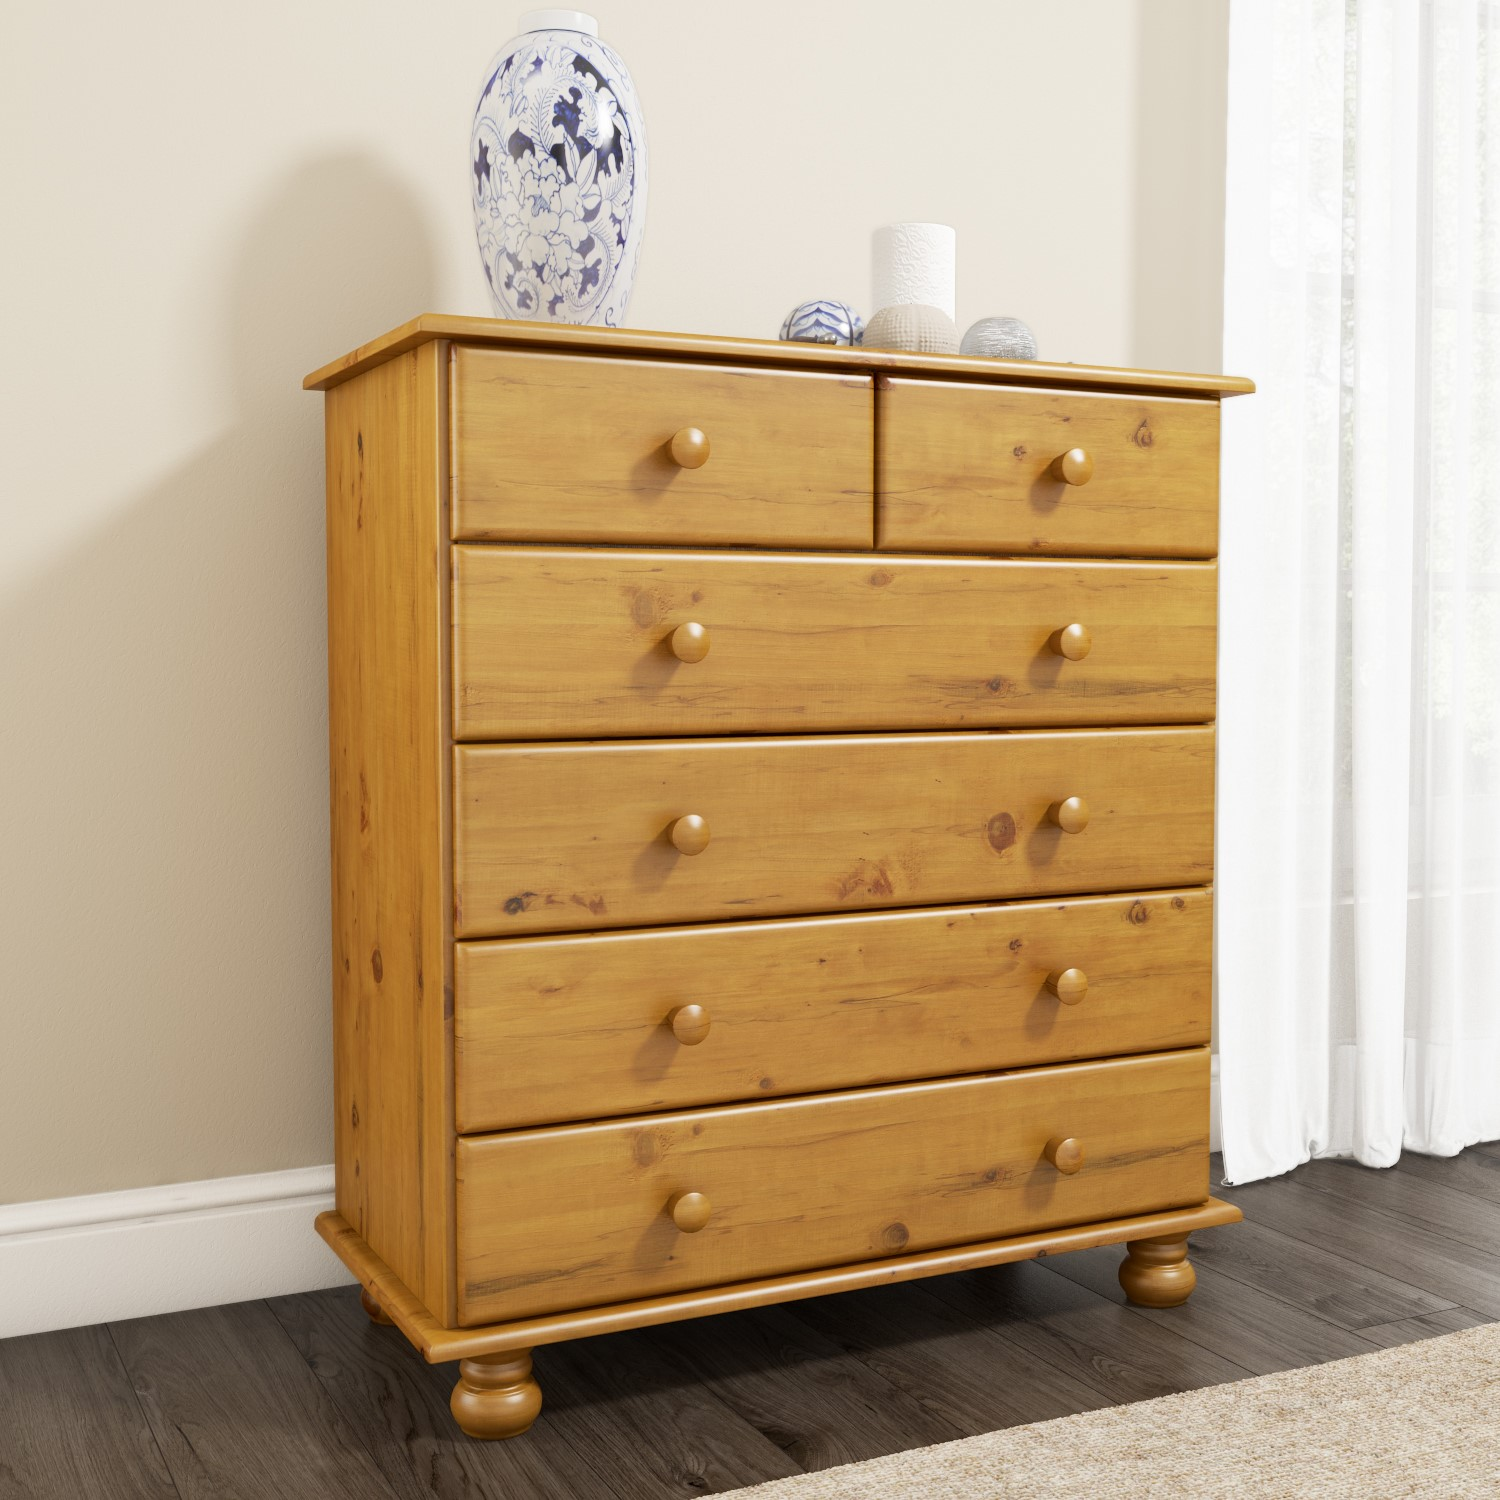 Hamilton 2 4 Chest Of Drawers In Pine Furniture123